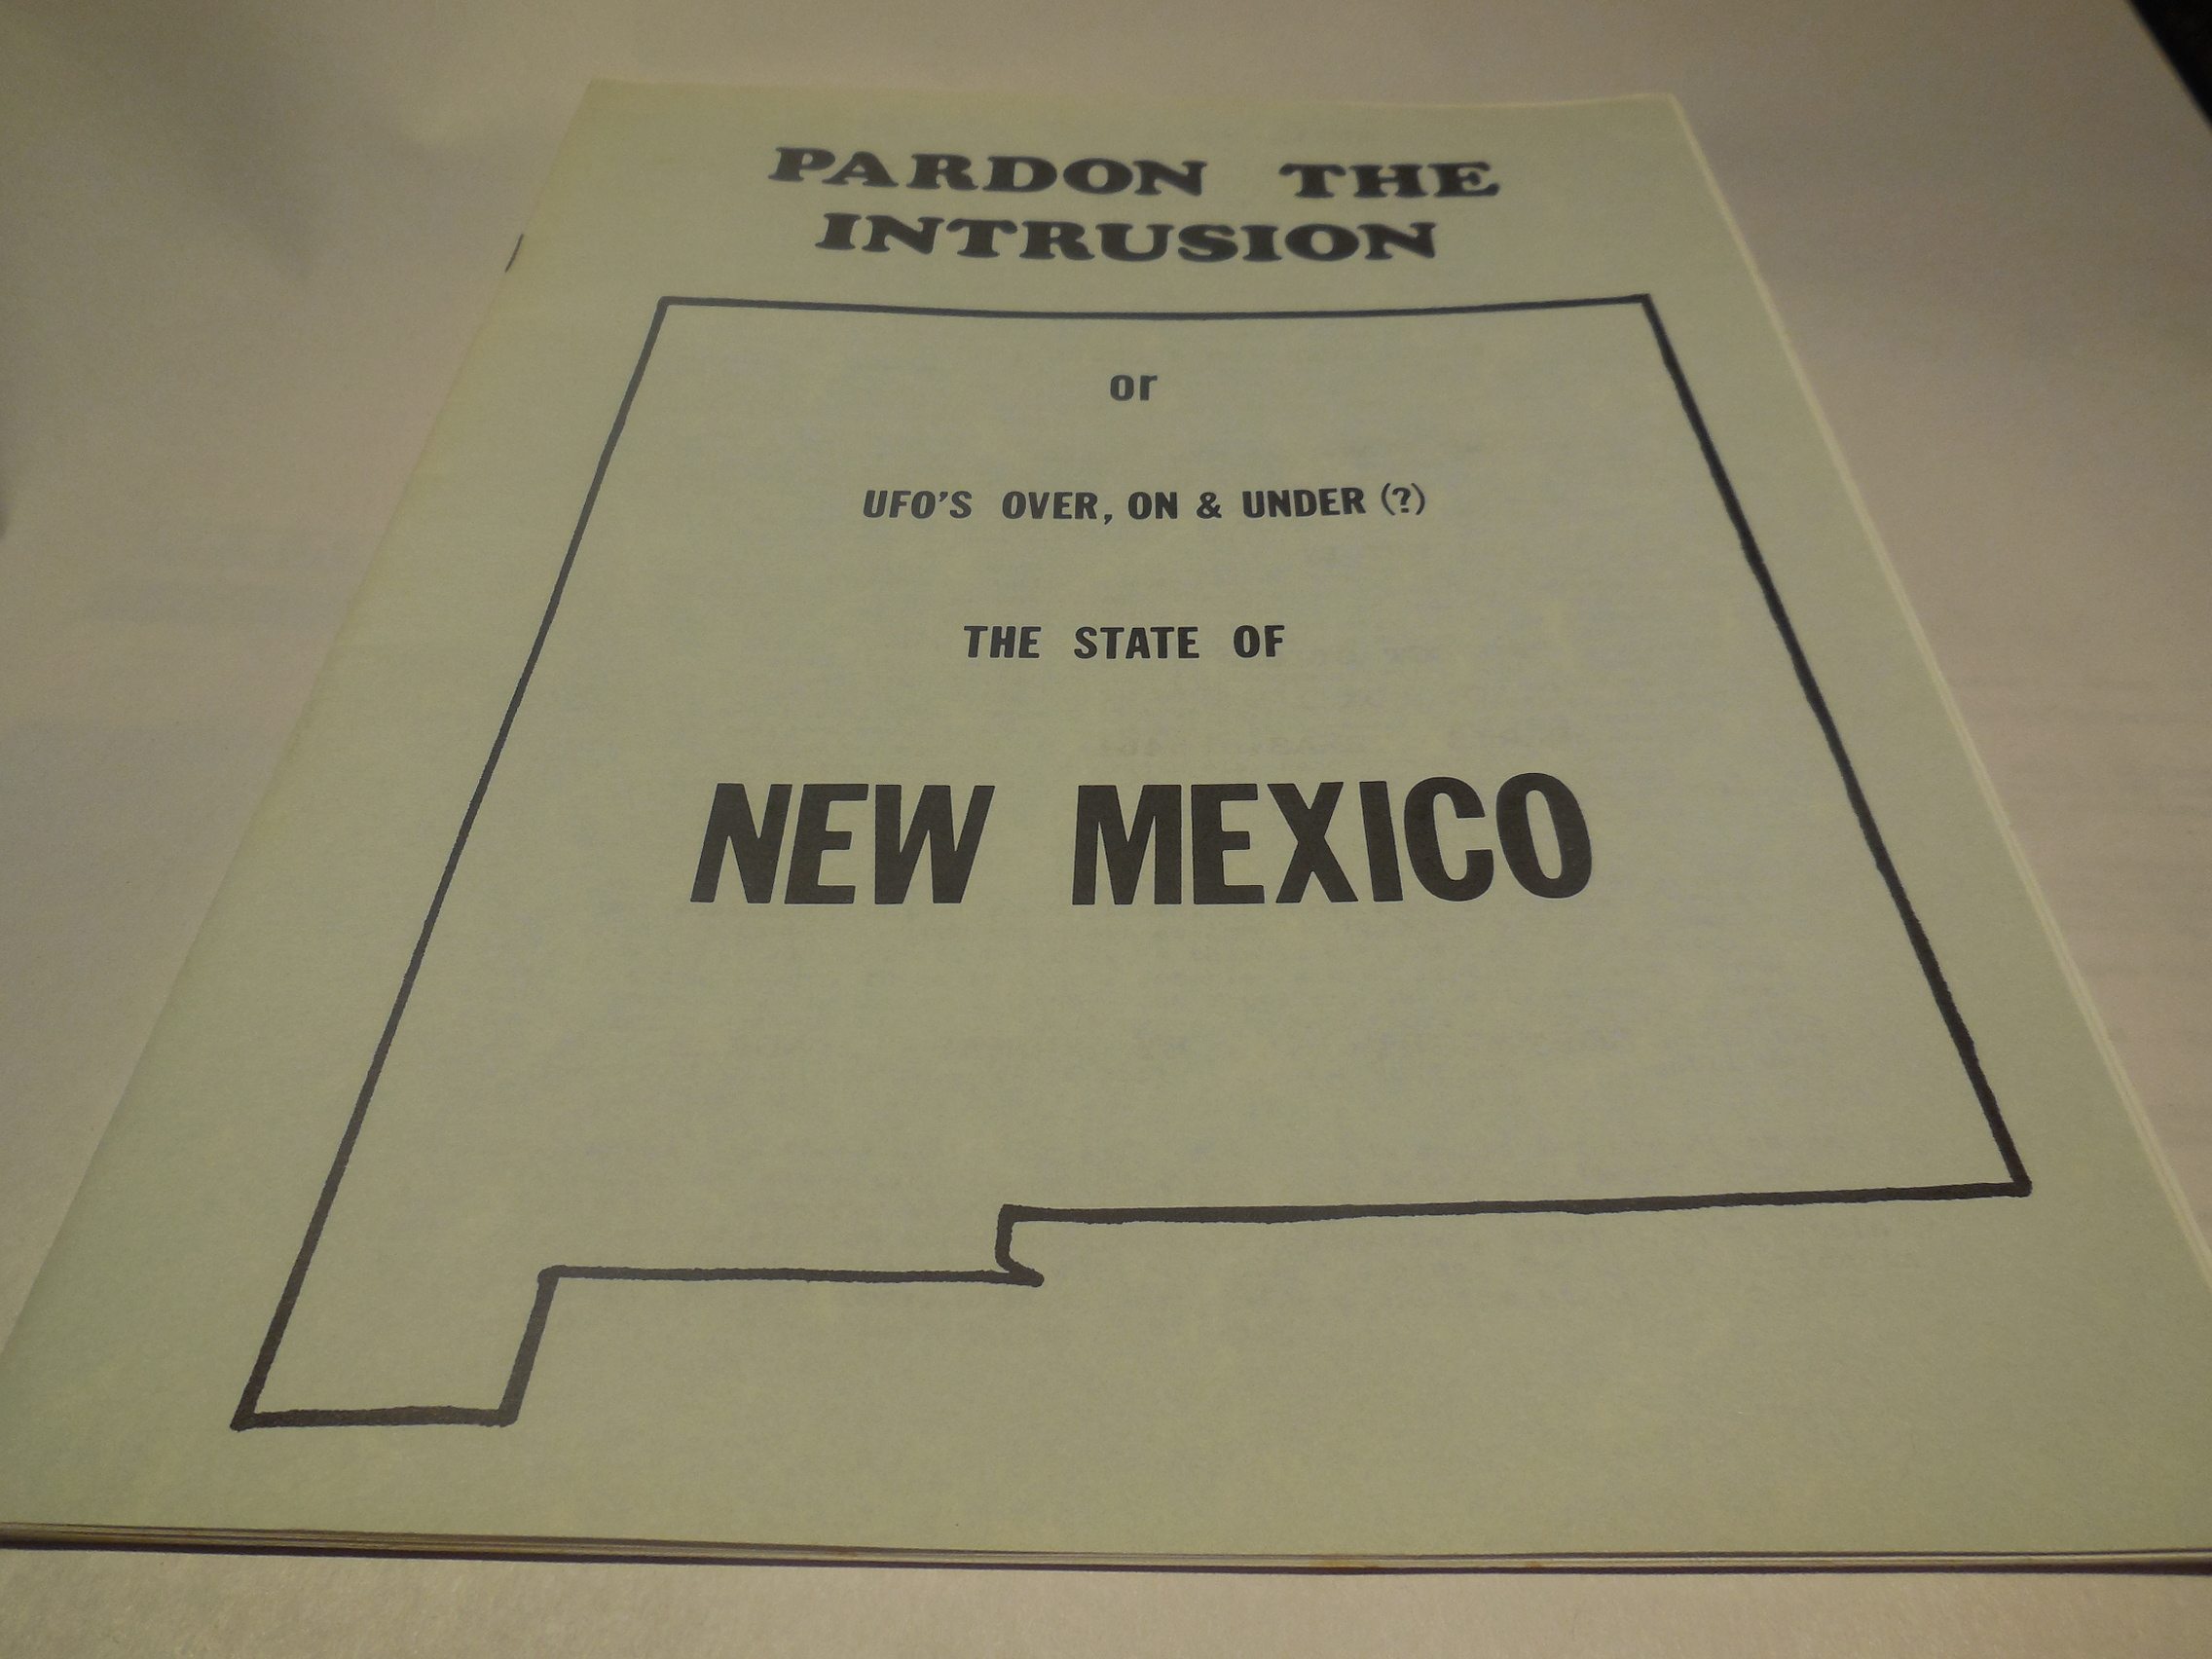 Image for Pardon the Intrusion or UFO's Over, On & Under (?) the State of New Mexico